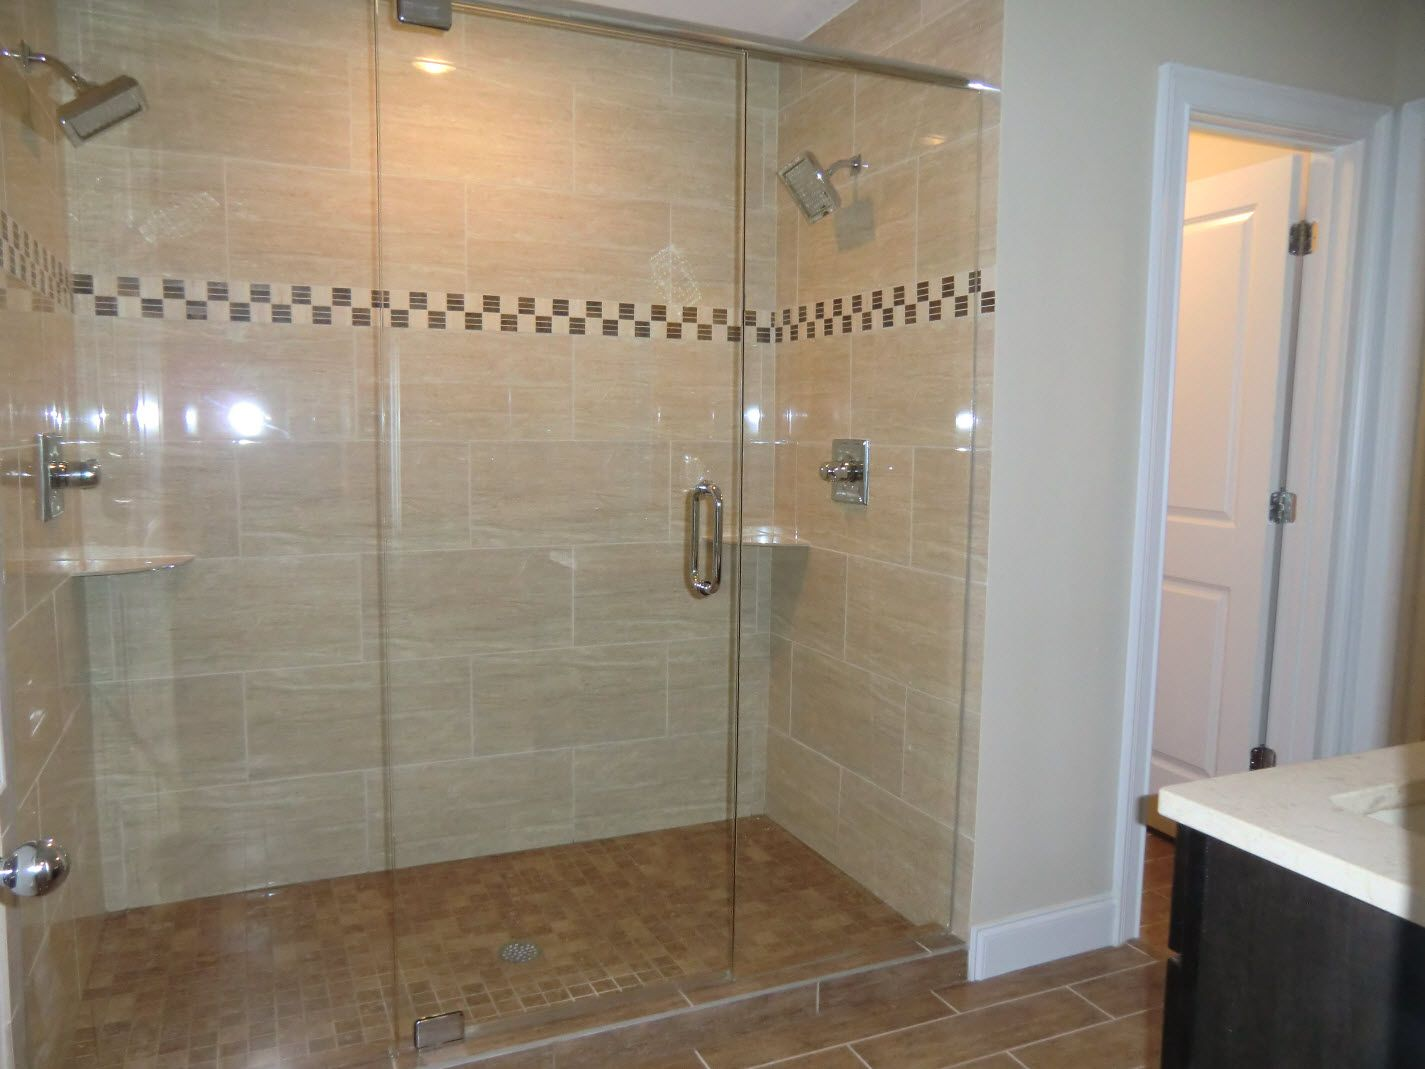 Bathroom Remodel No Tub master bathroom 8 x 13 no tub - google search | master bath